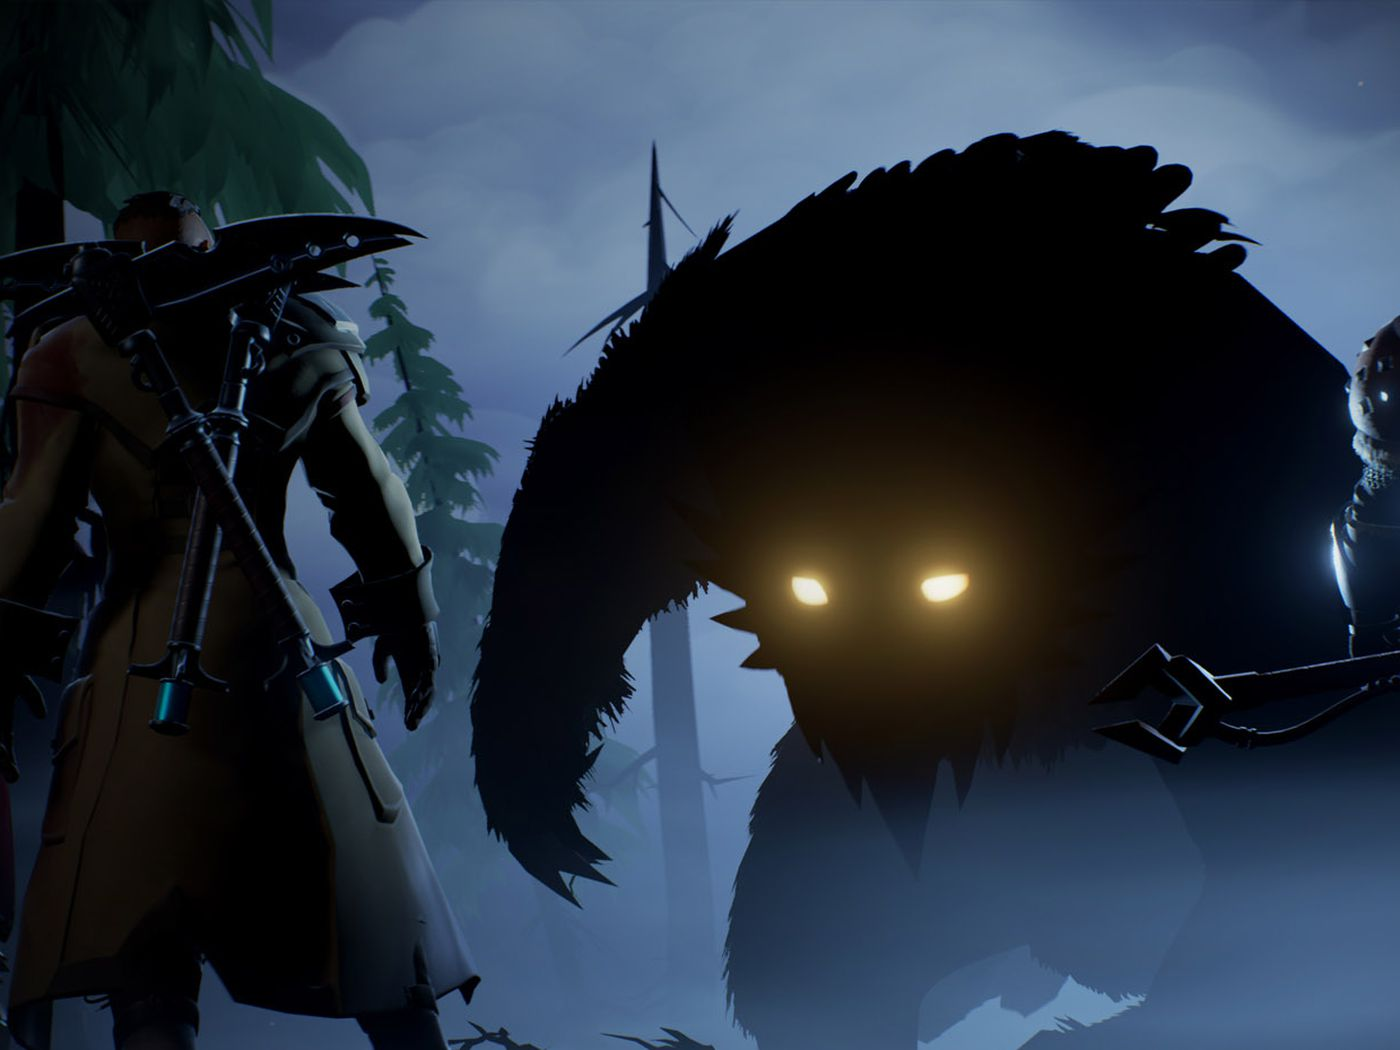 New Dauntless trailer reveals cross-platform releases and play - Polygon